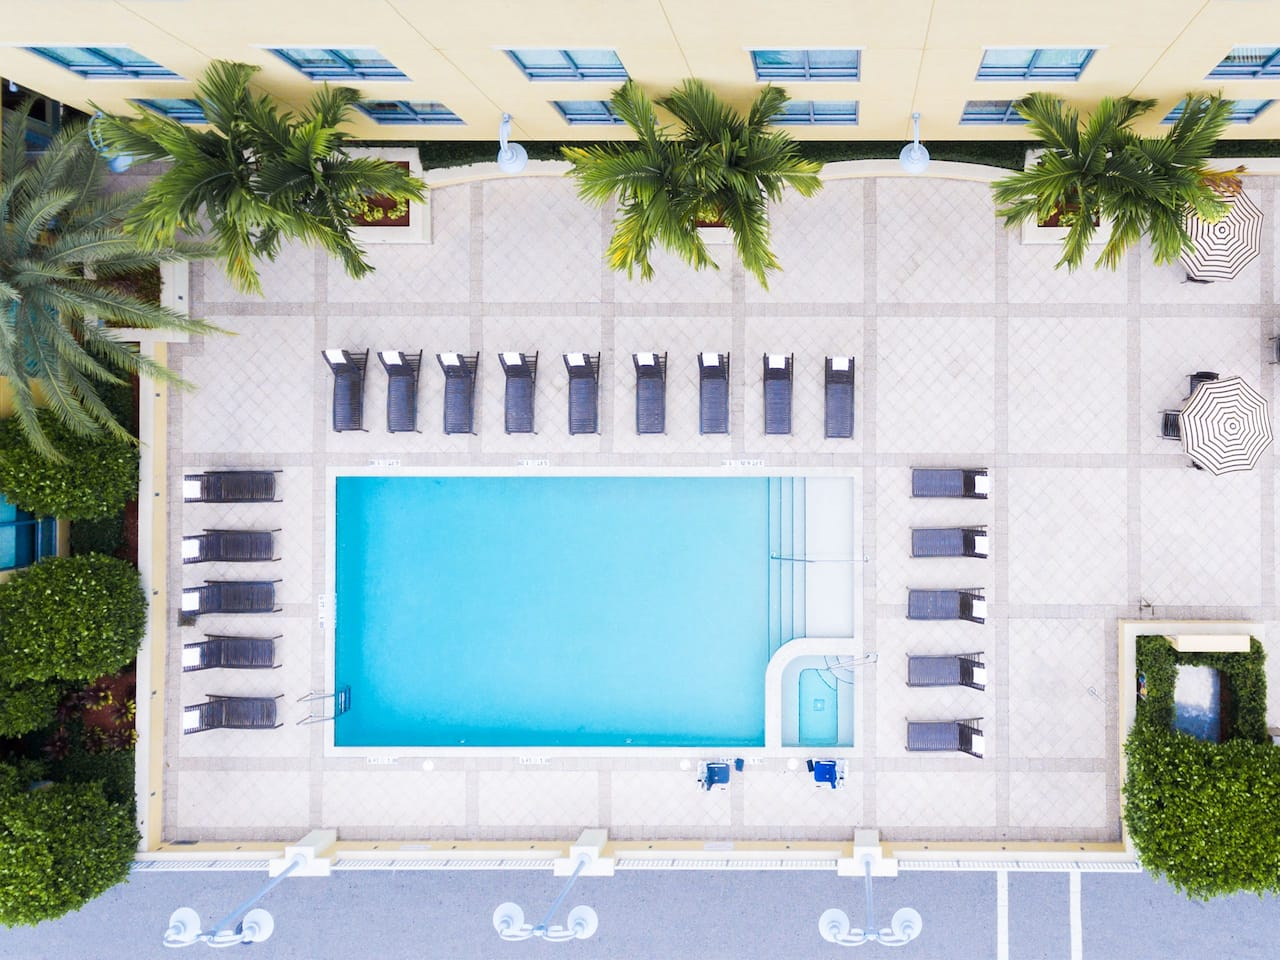 Hyatt Place Delray Beach Outdoor Pool Aerial View